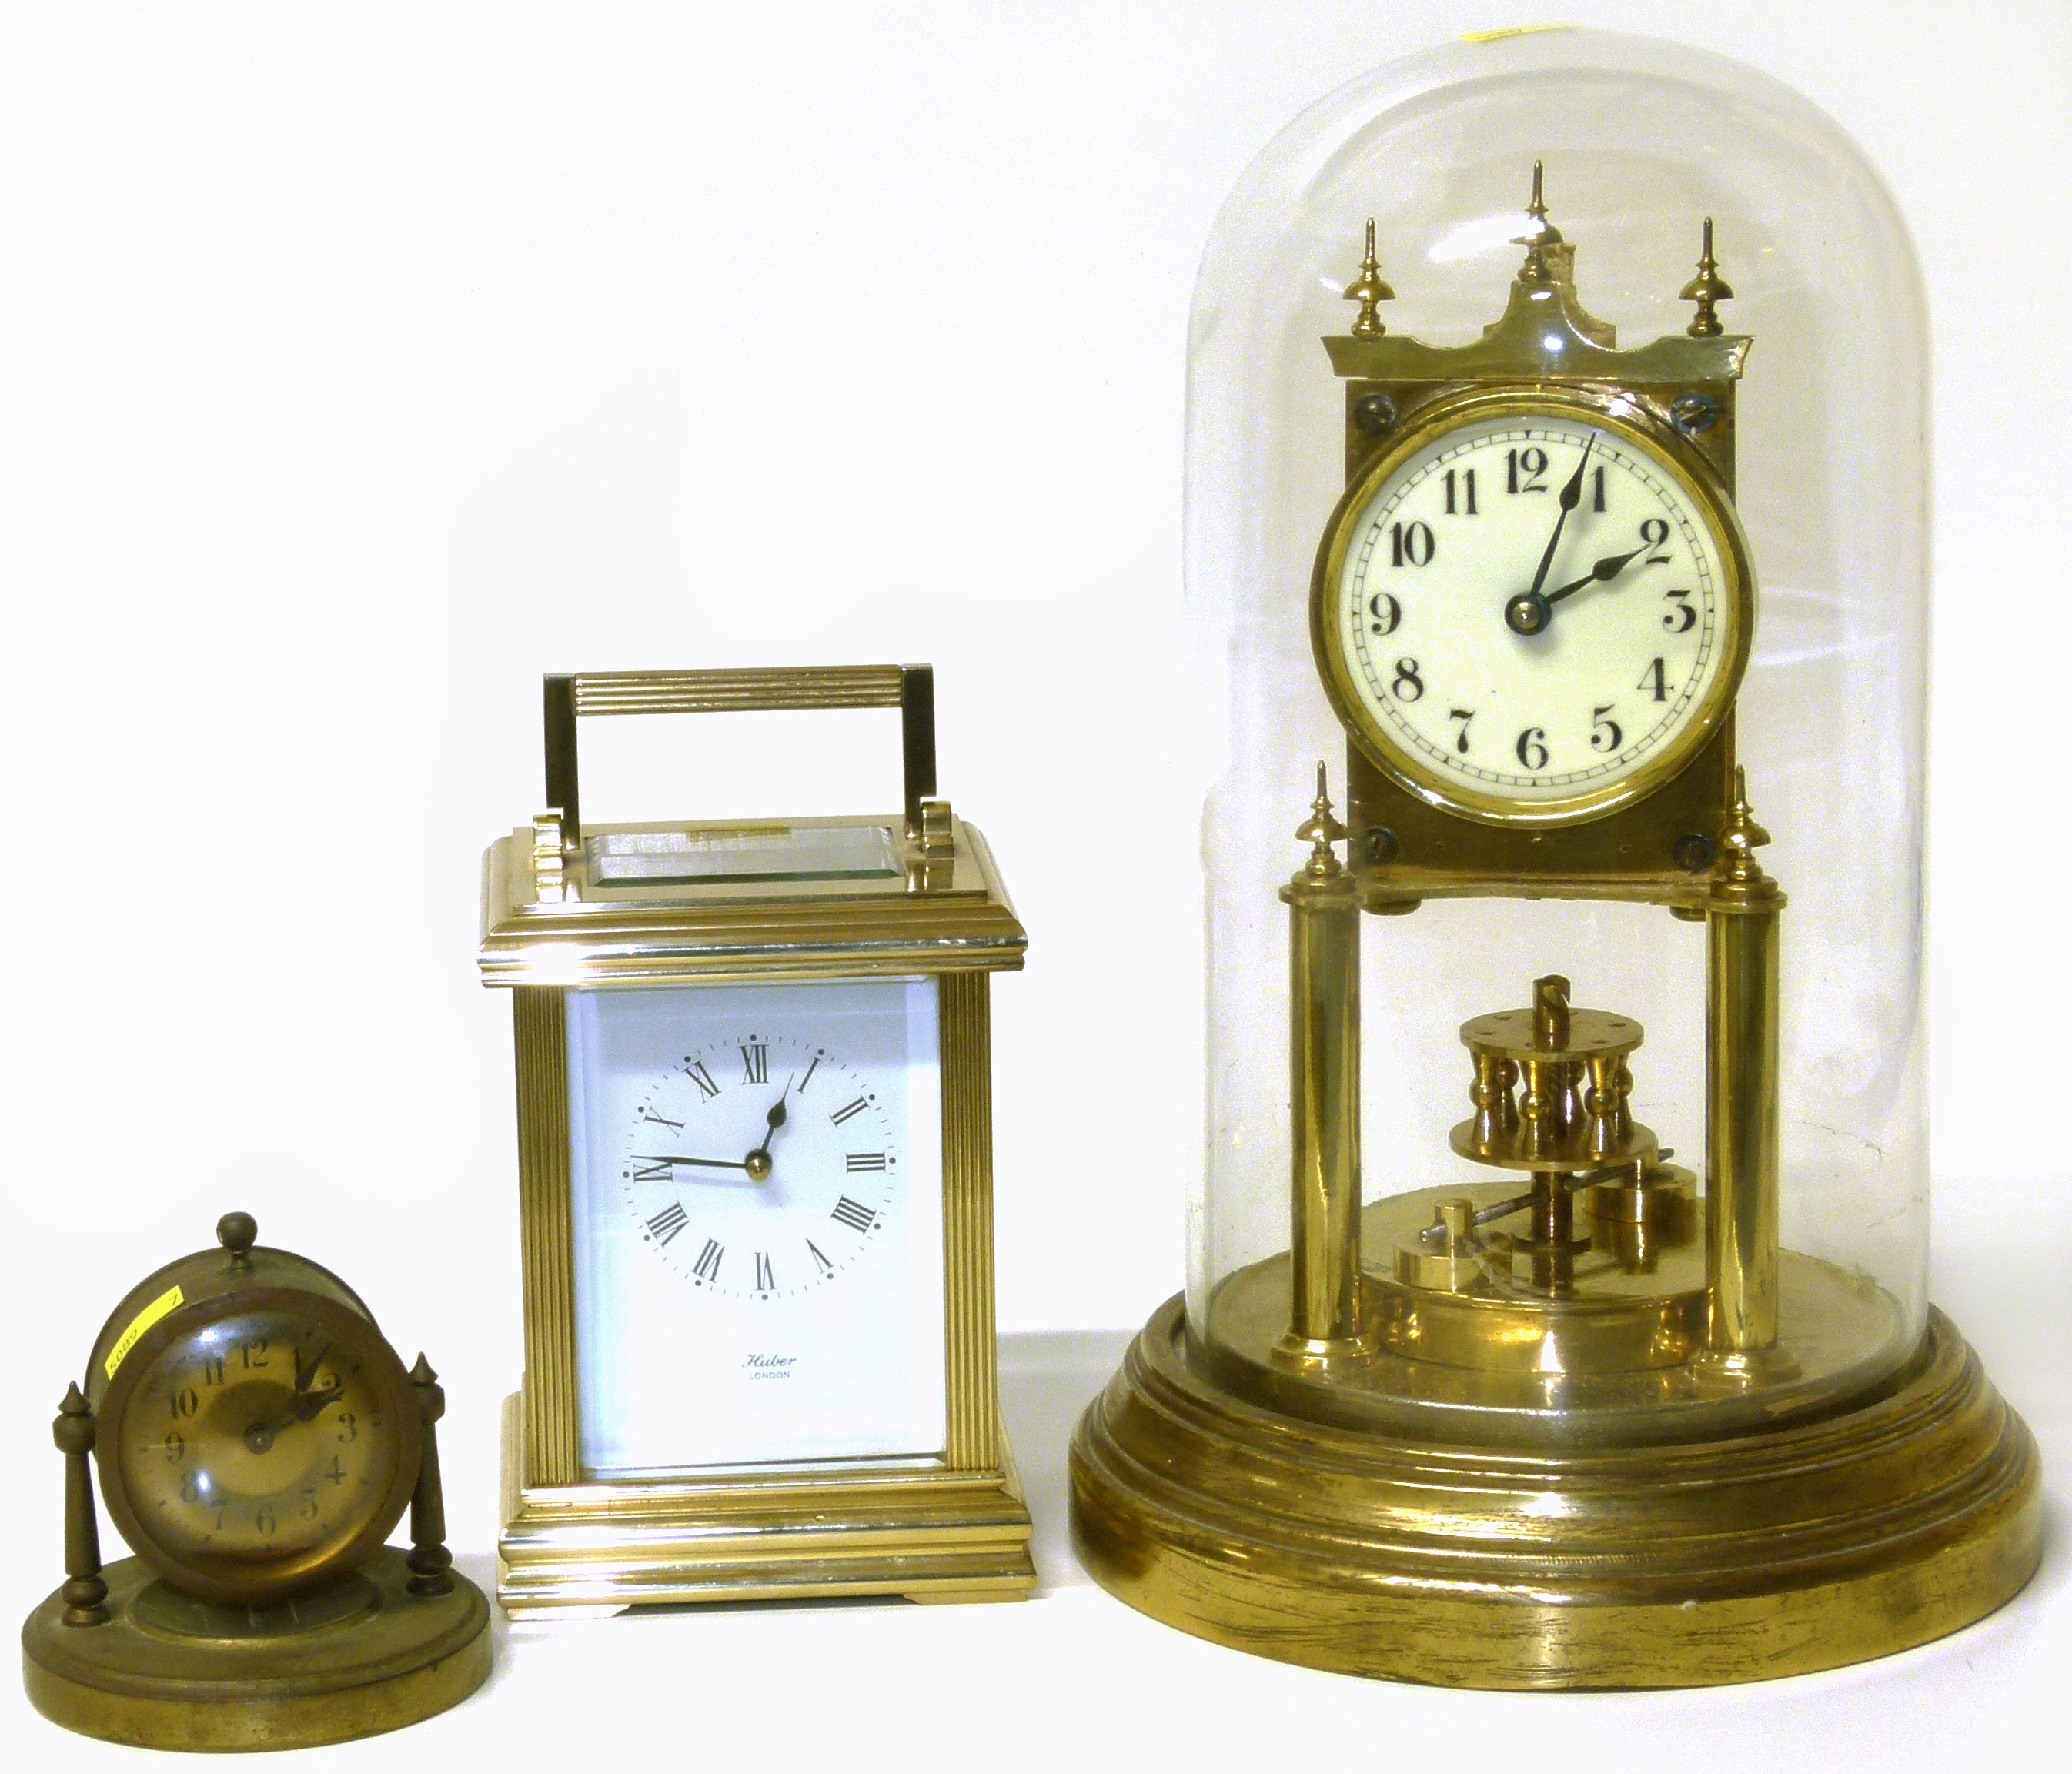 Lot 78 - Gustav Becker clock under dome, Huber carriage clock and one other We are unable to do condition